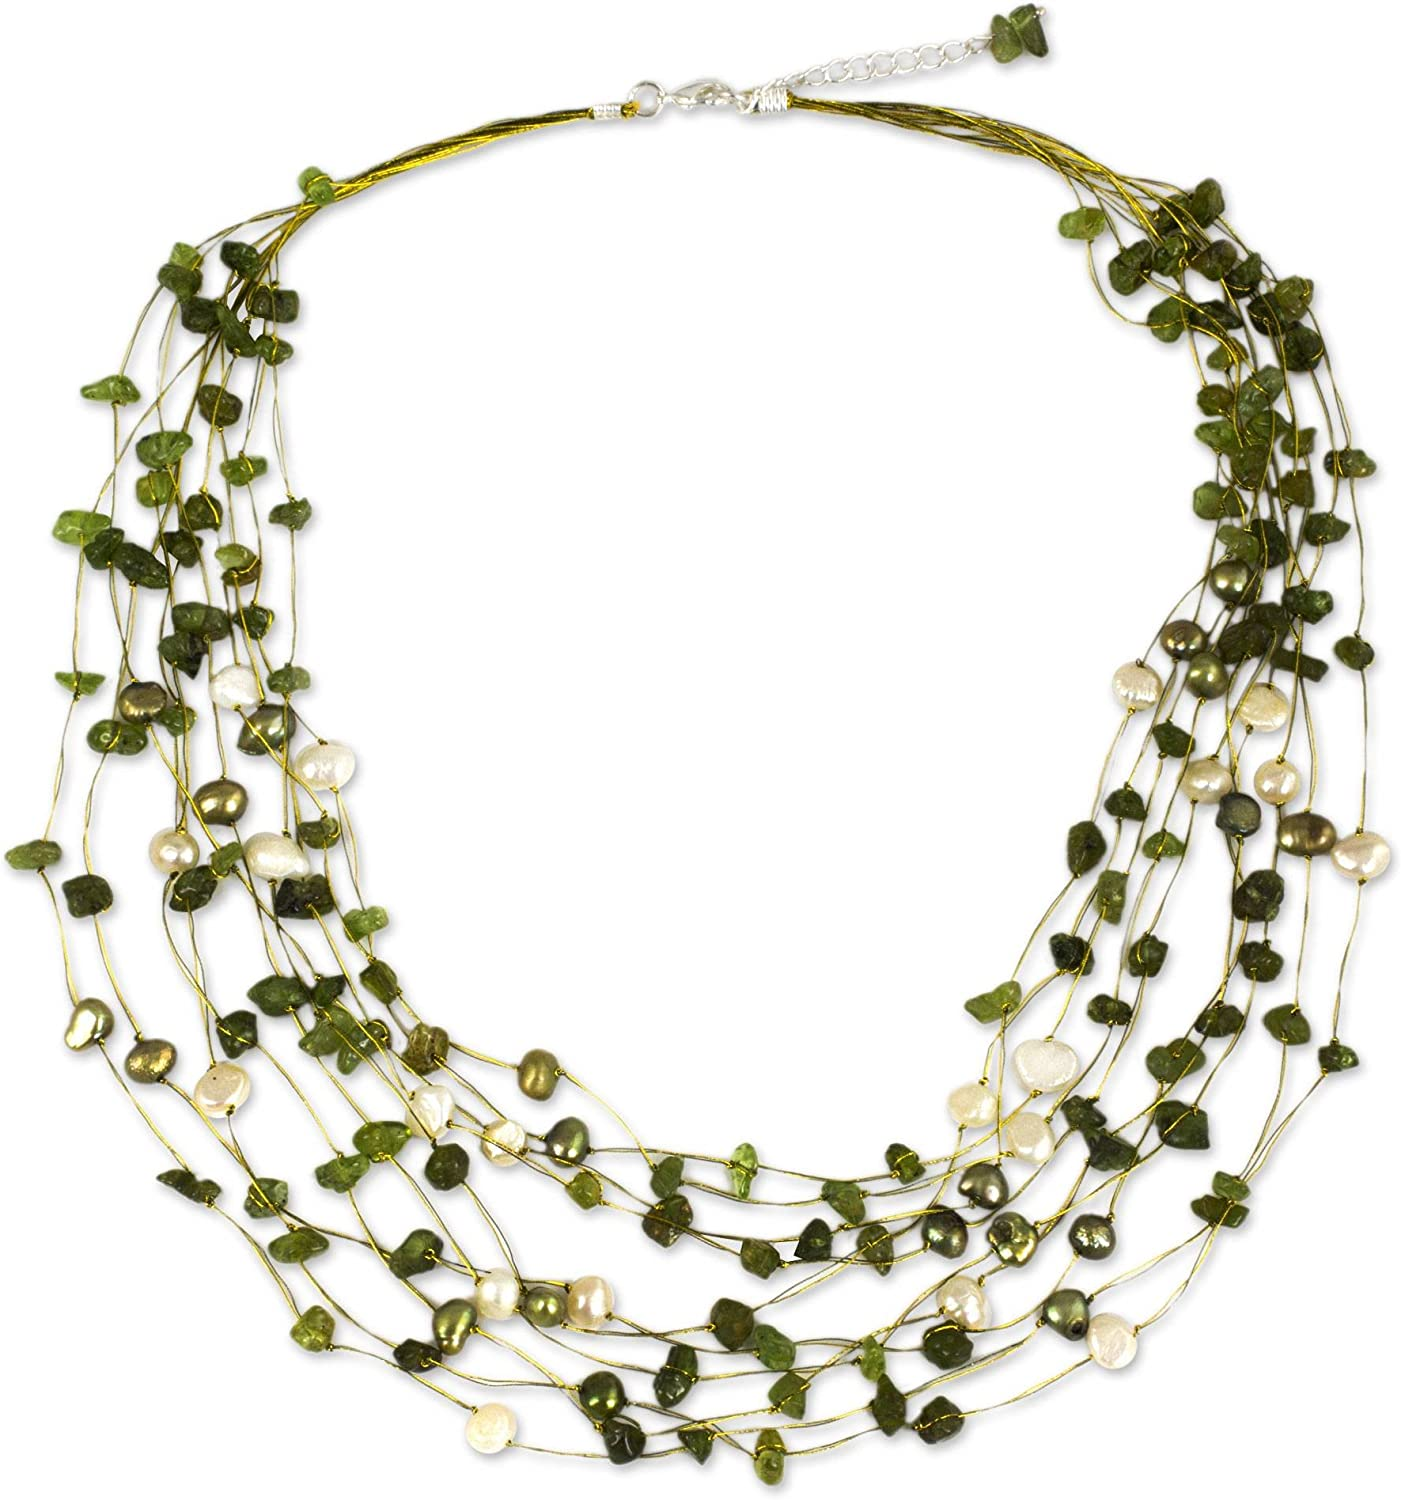 NOVICA Peridot and Dyed Cultured Freshwater Pearl Strand Necklace, 20